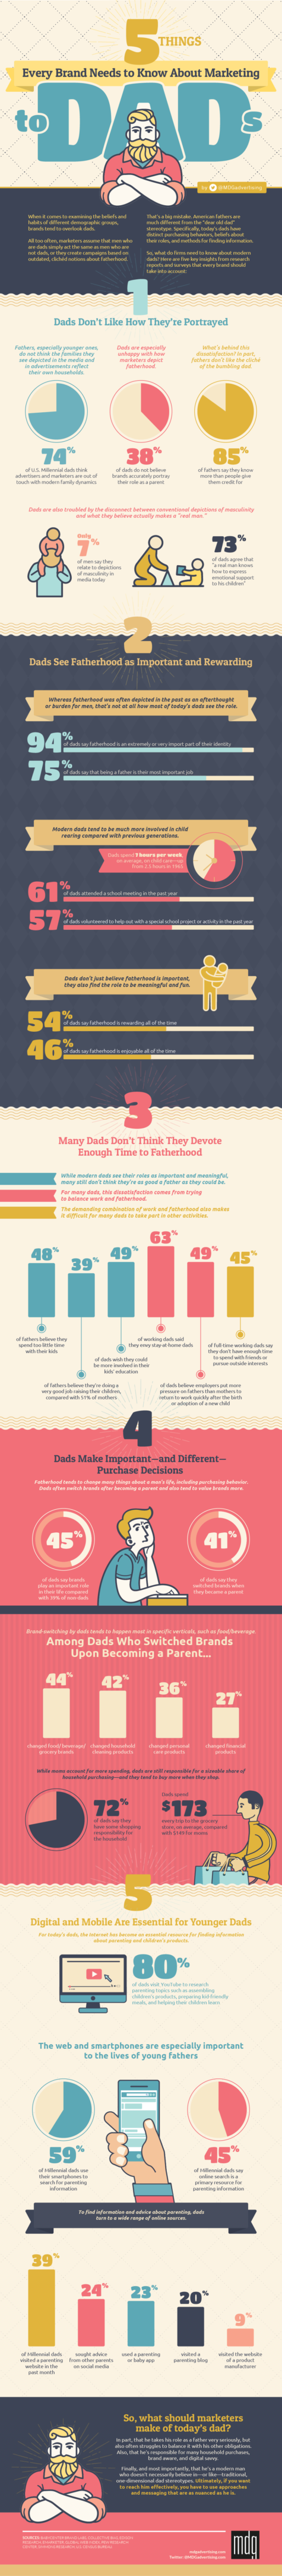 5 Things Every Brand Need to Know About Marketing to Dads [Infographic]